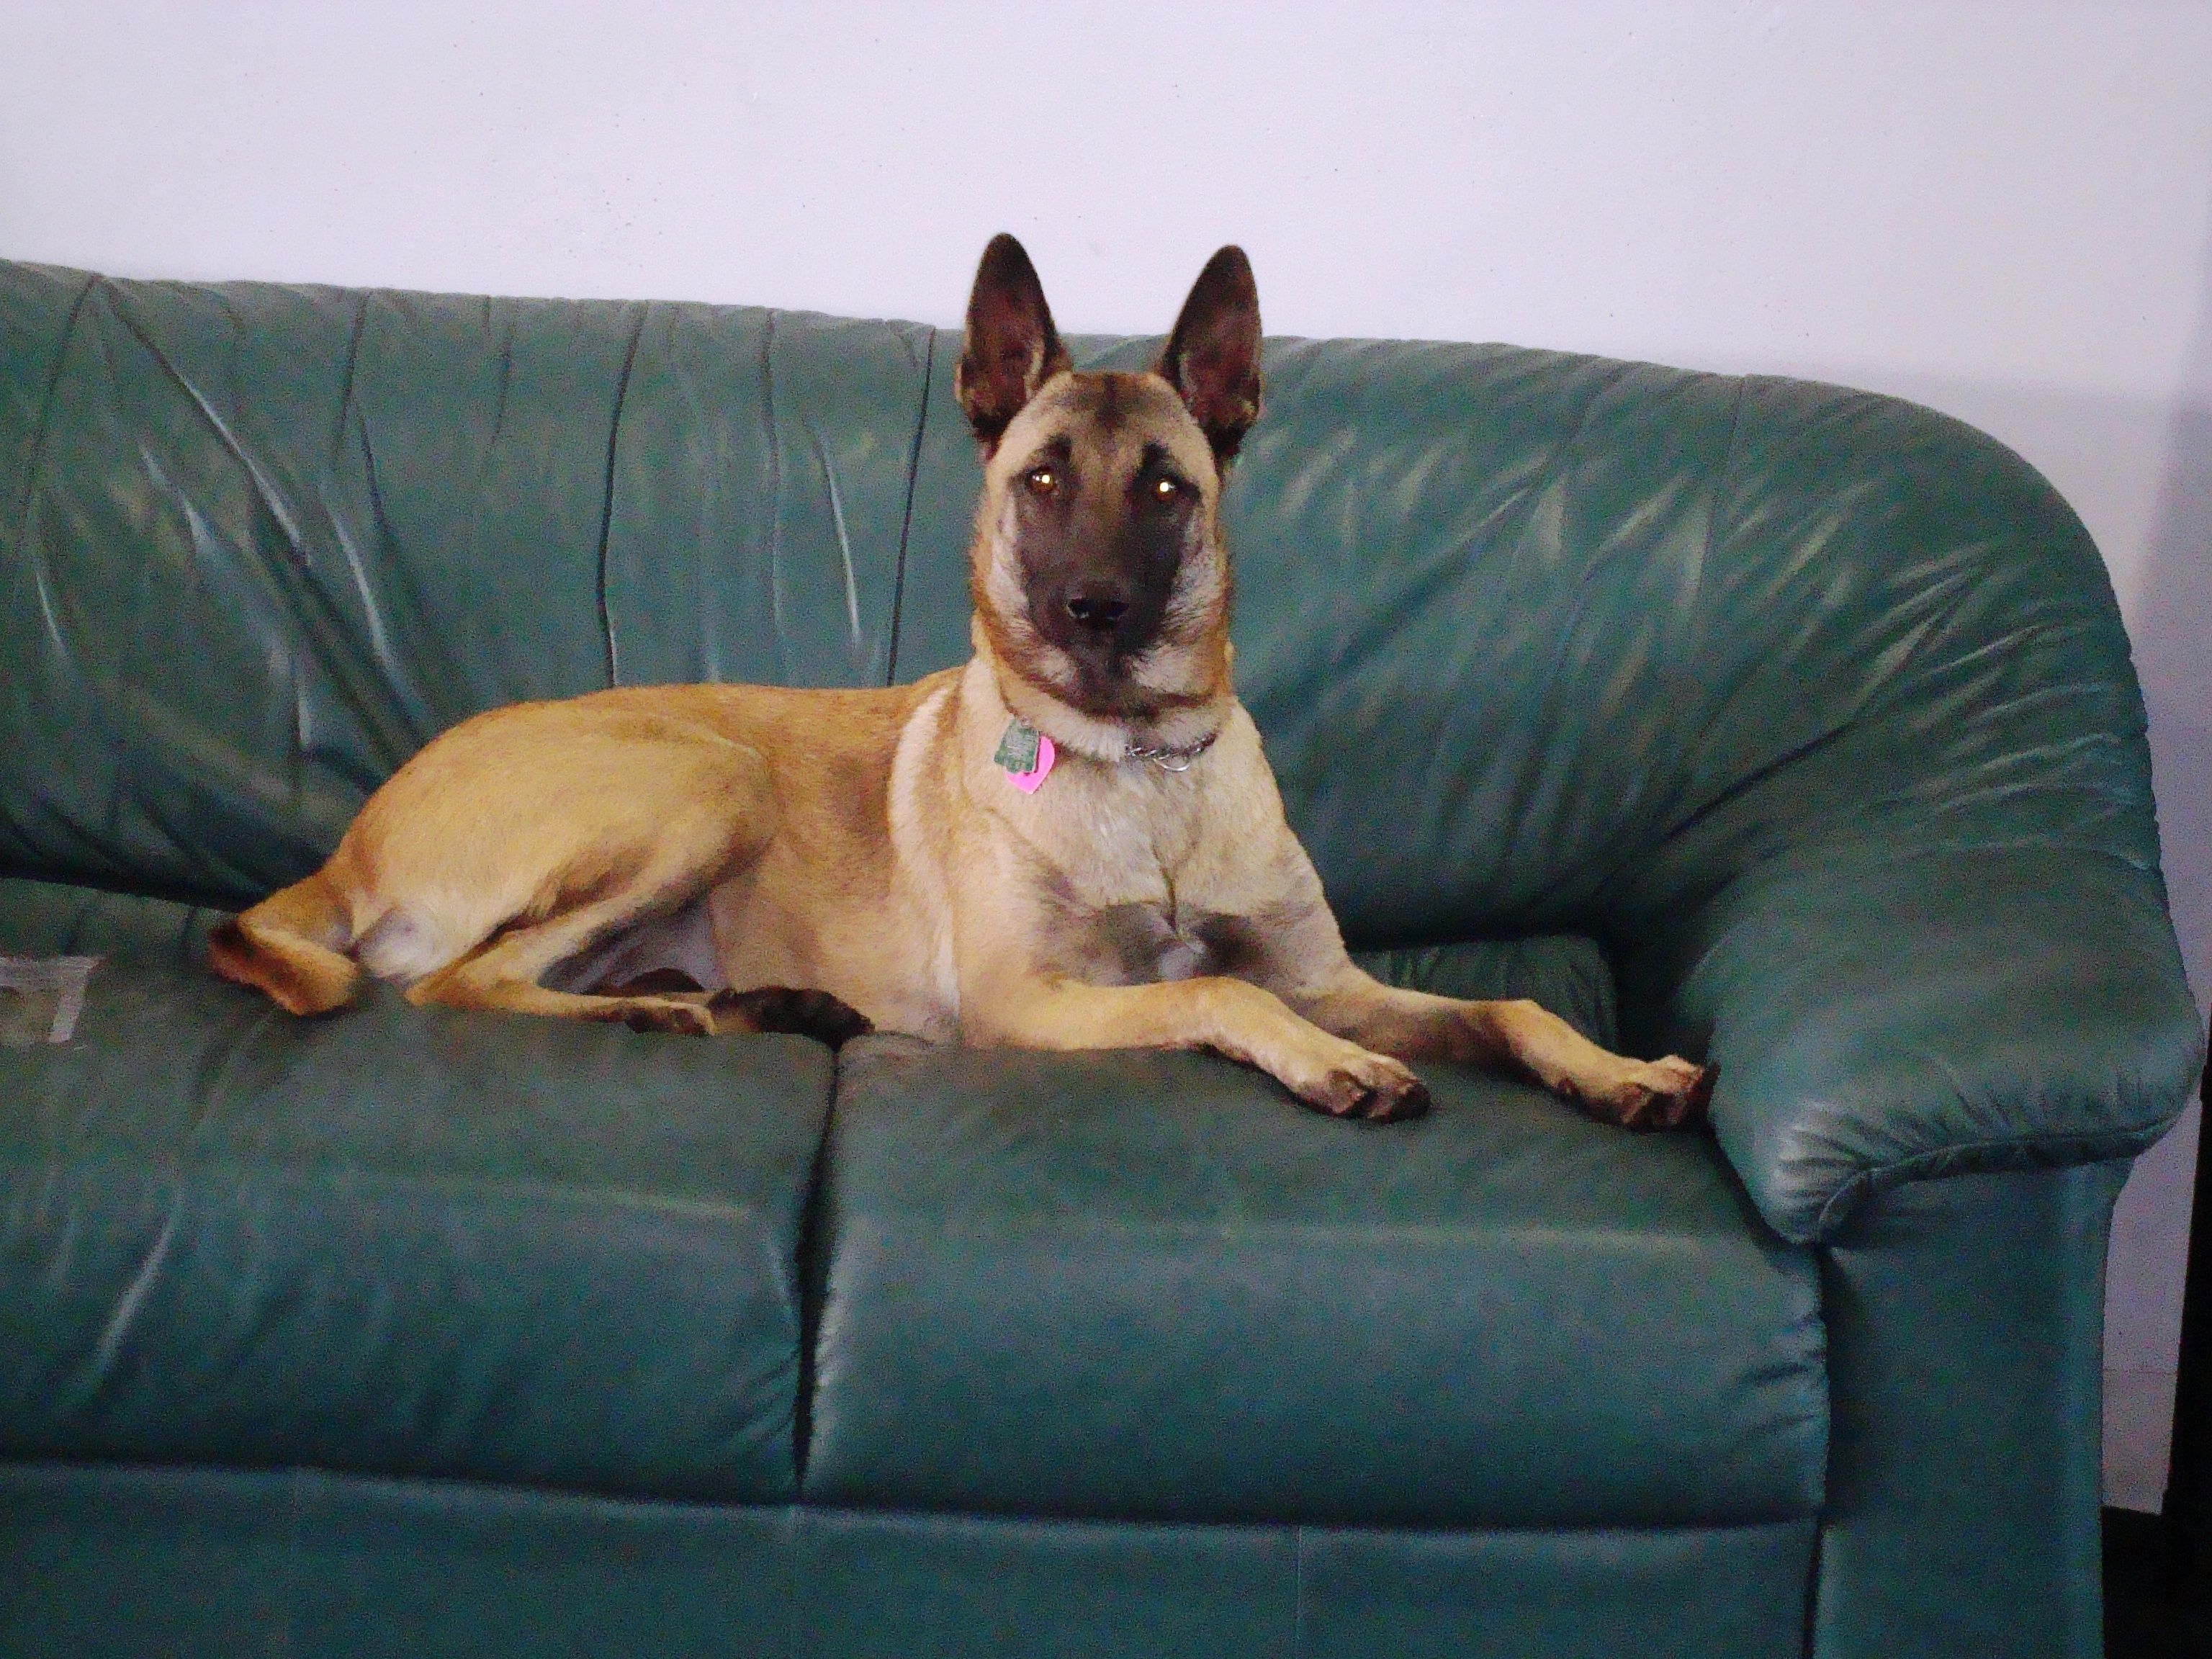 My Beautiful Lucy Belgium Malinois Too Small For K9 Officer